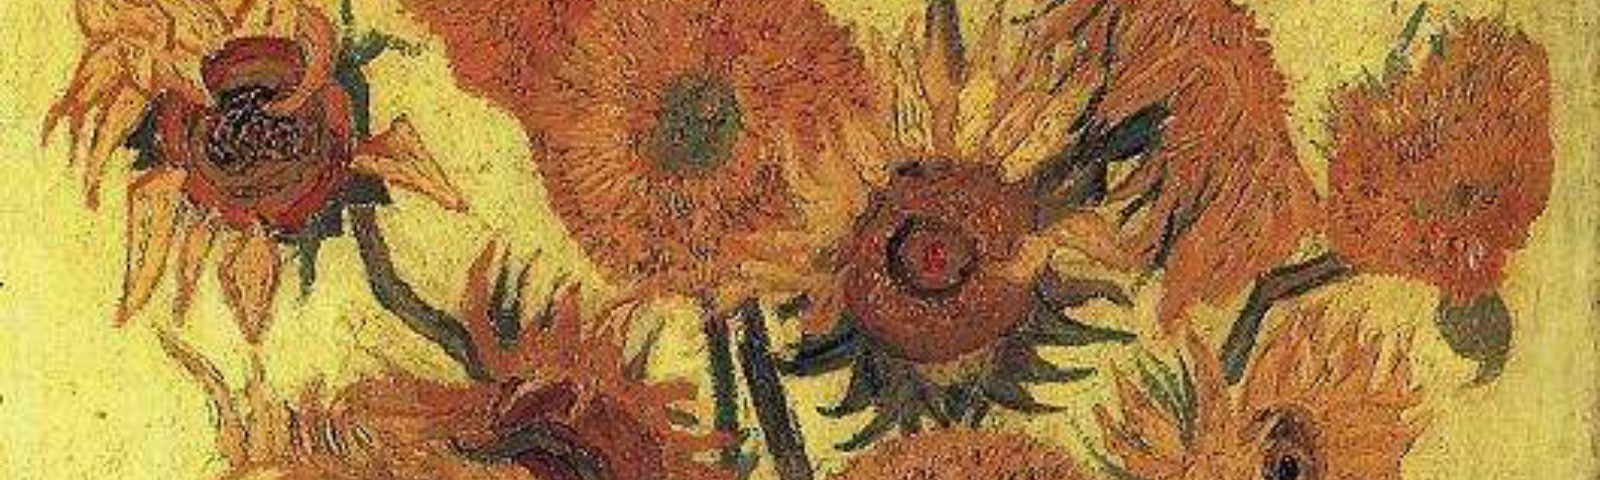 Impasto painting in hues of yellow: vase with 15 sunflowers in various life stages.